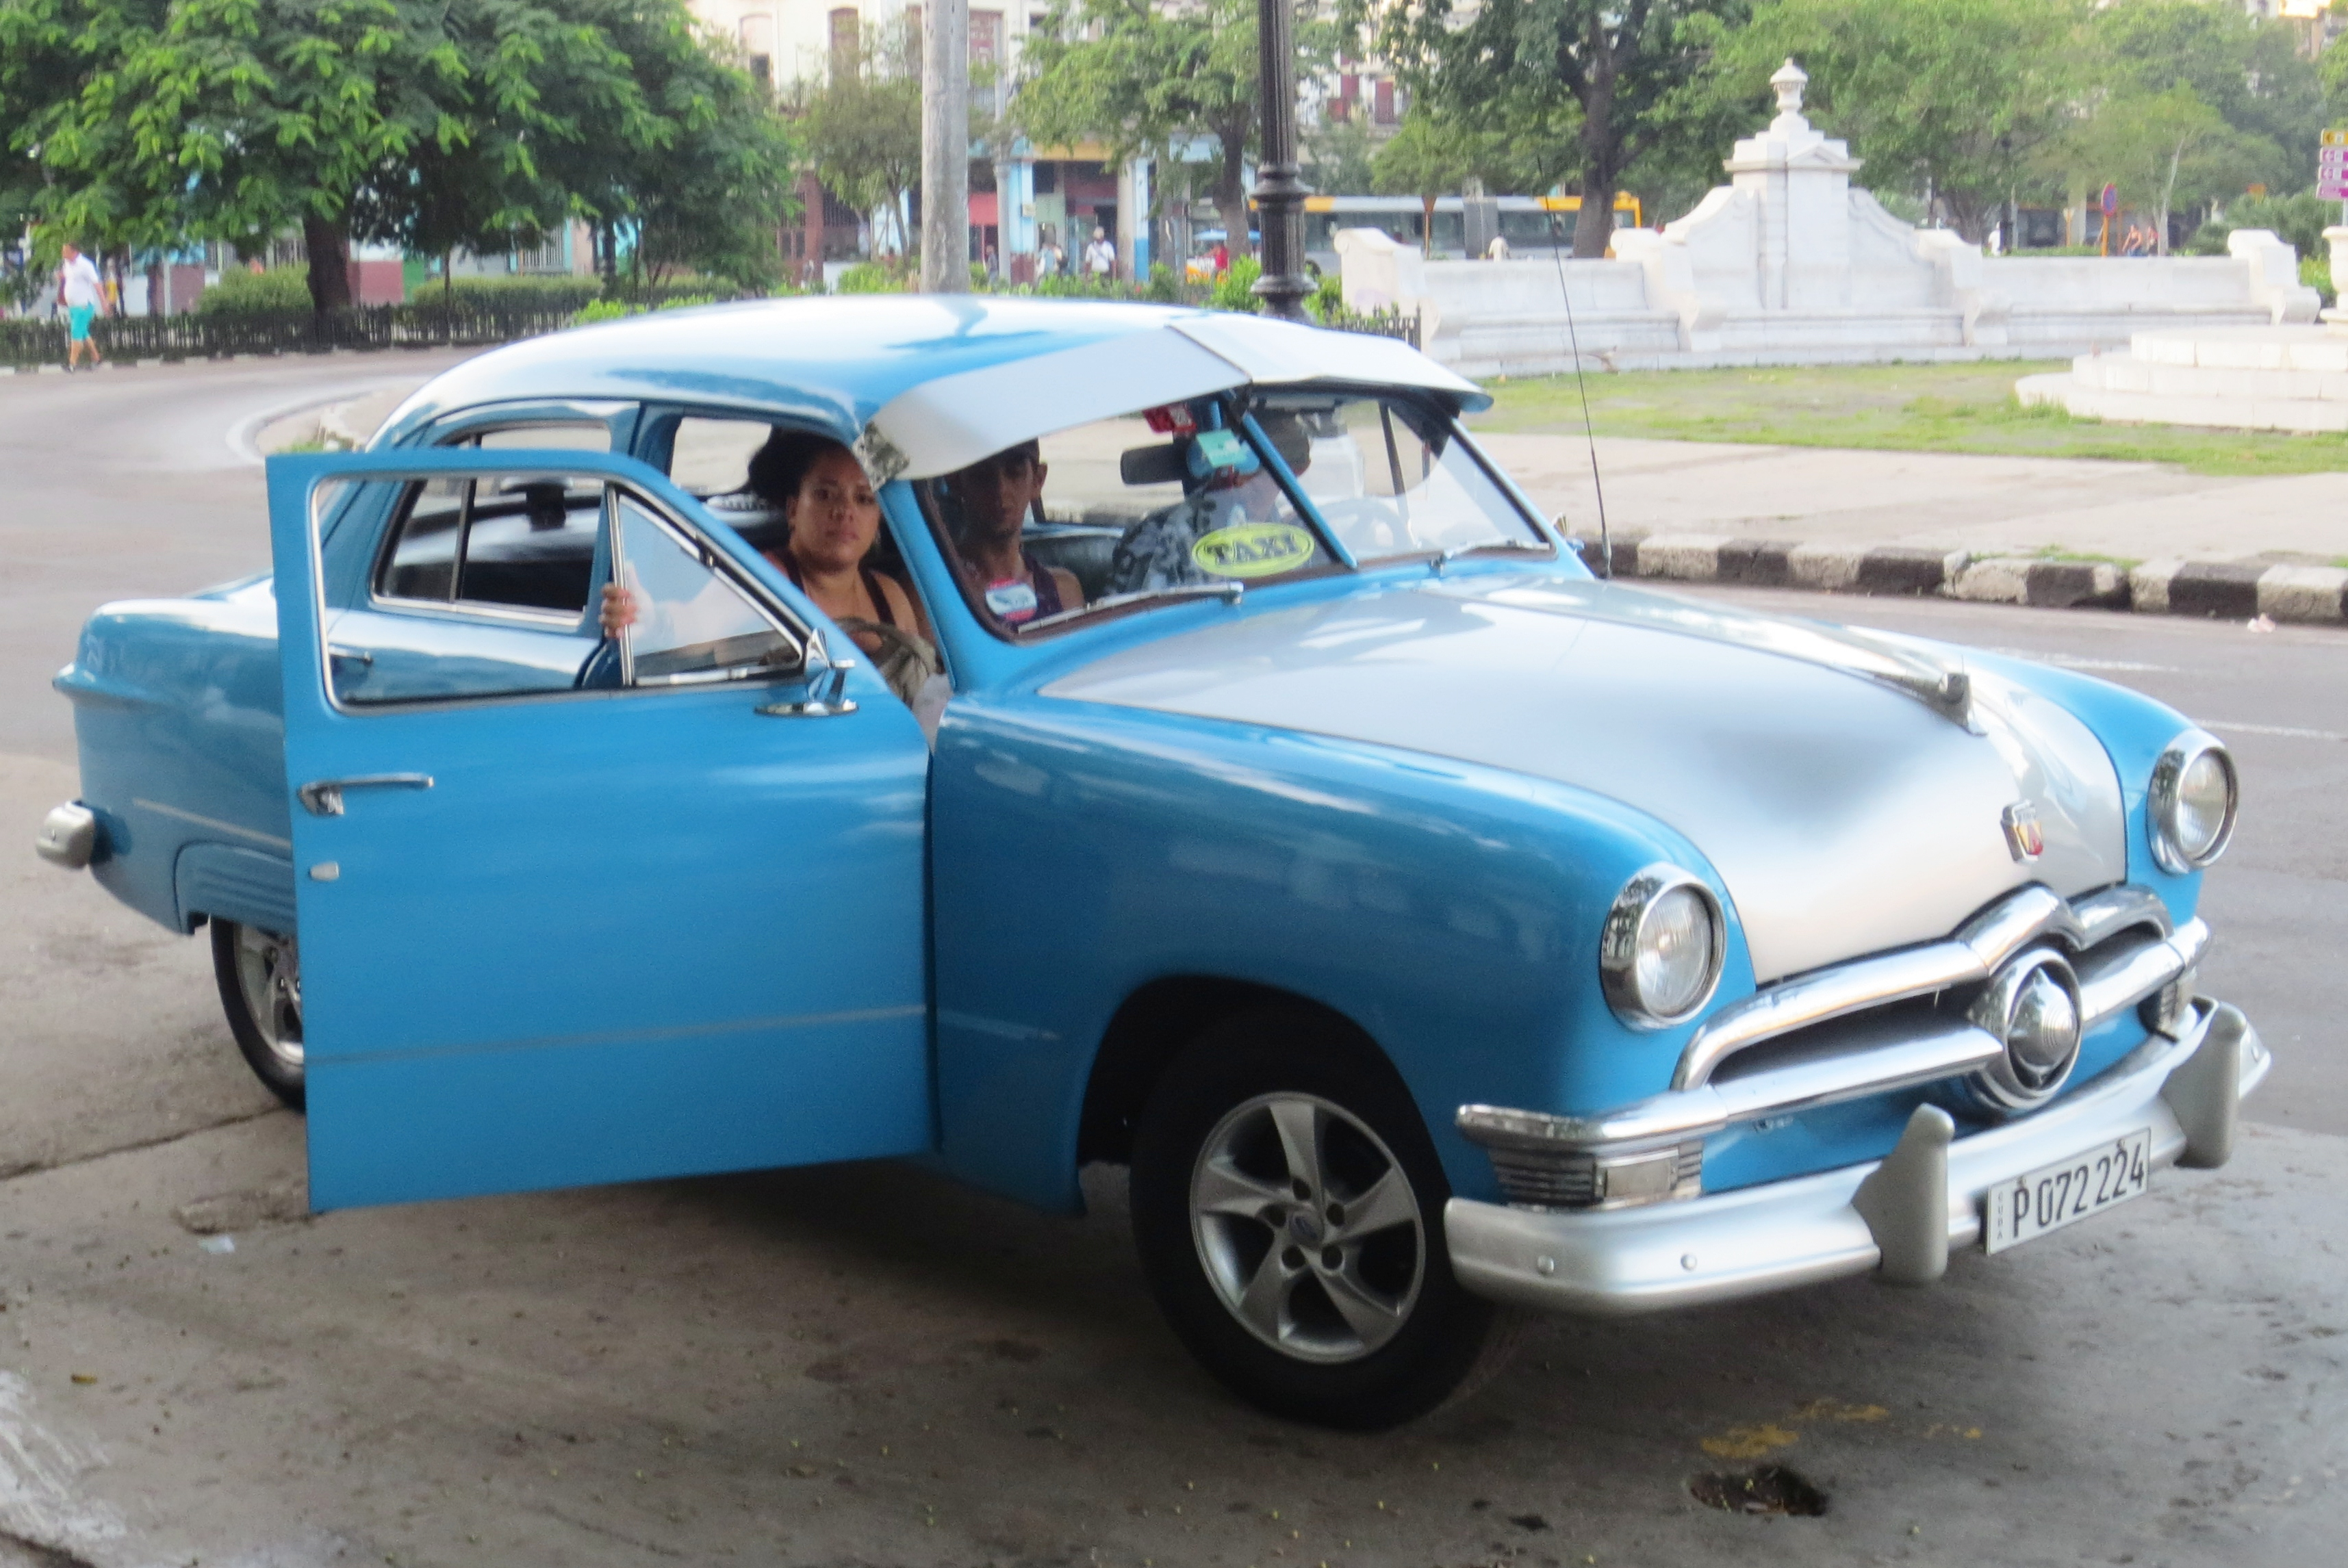 When Classic Cars Die They Go to Cuba—Not Heaven | John Biggs